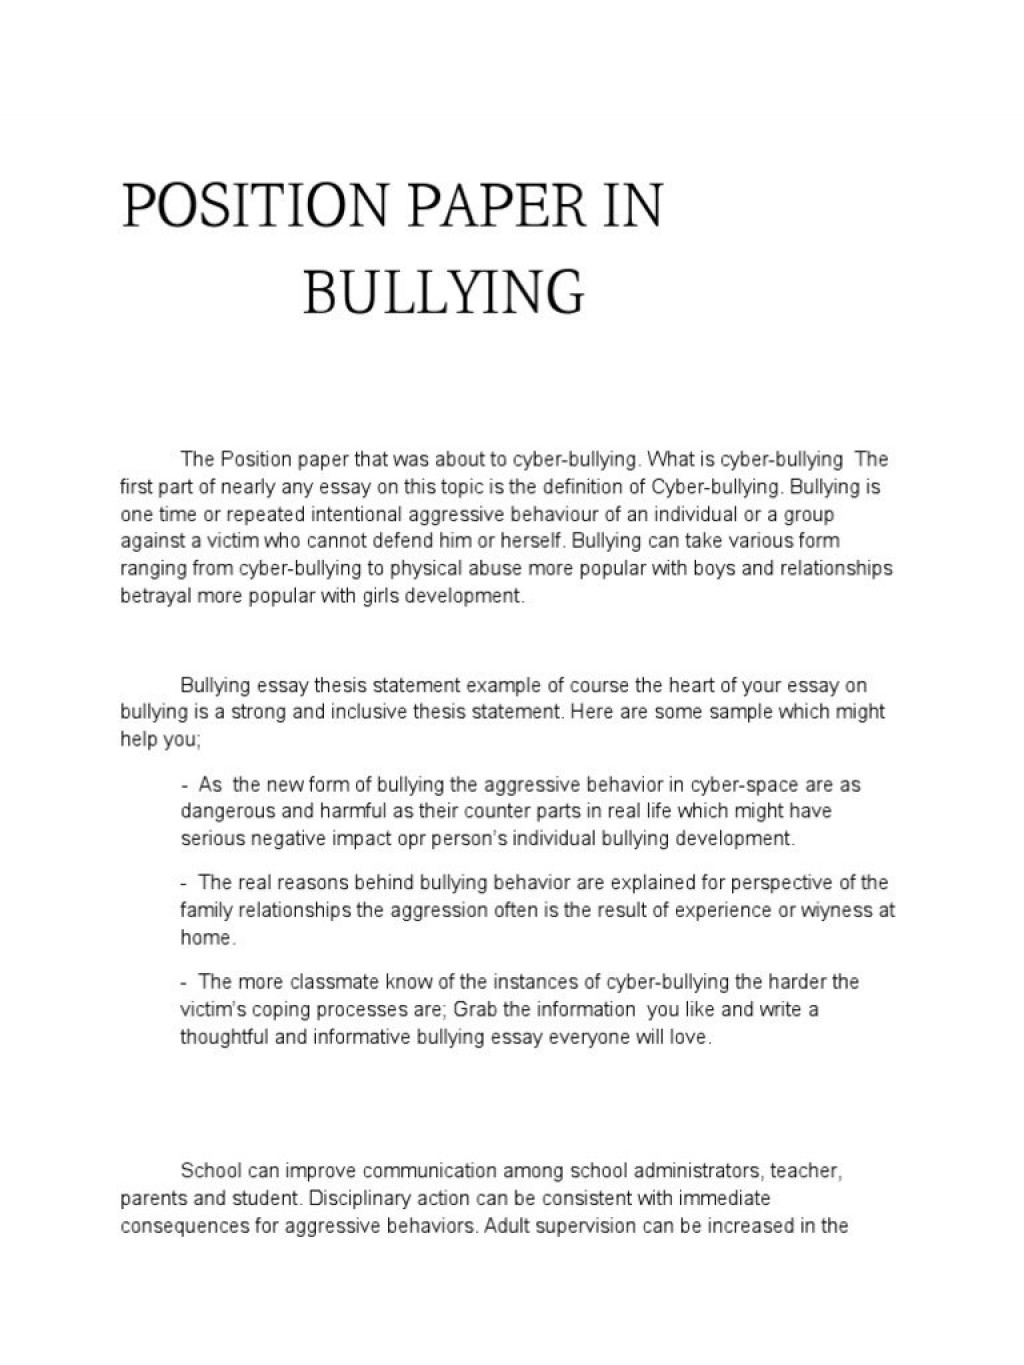 005 Bullying Essay Example Good Conclusion For Academic Writing Service Cause And Effect On In Awful Persuasive Ideas Argumentative Thesis Large